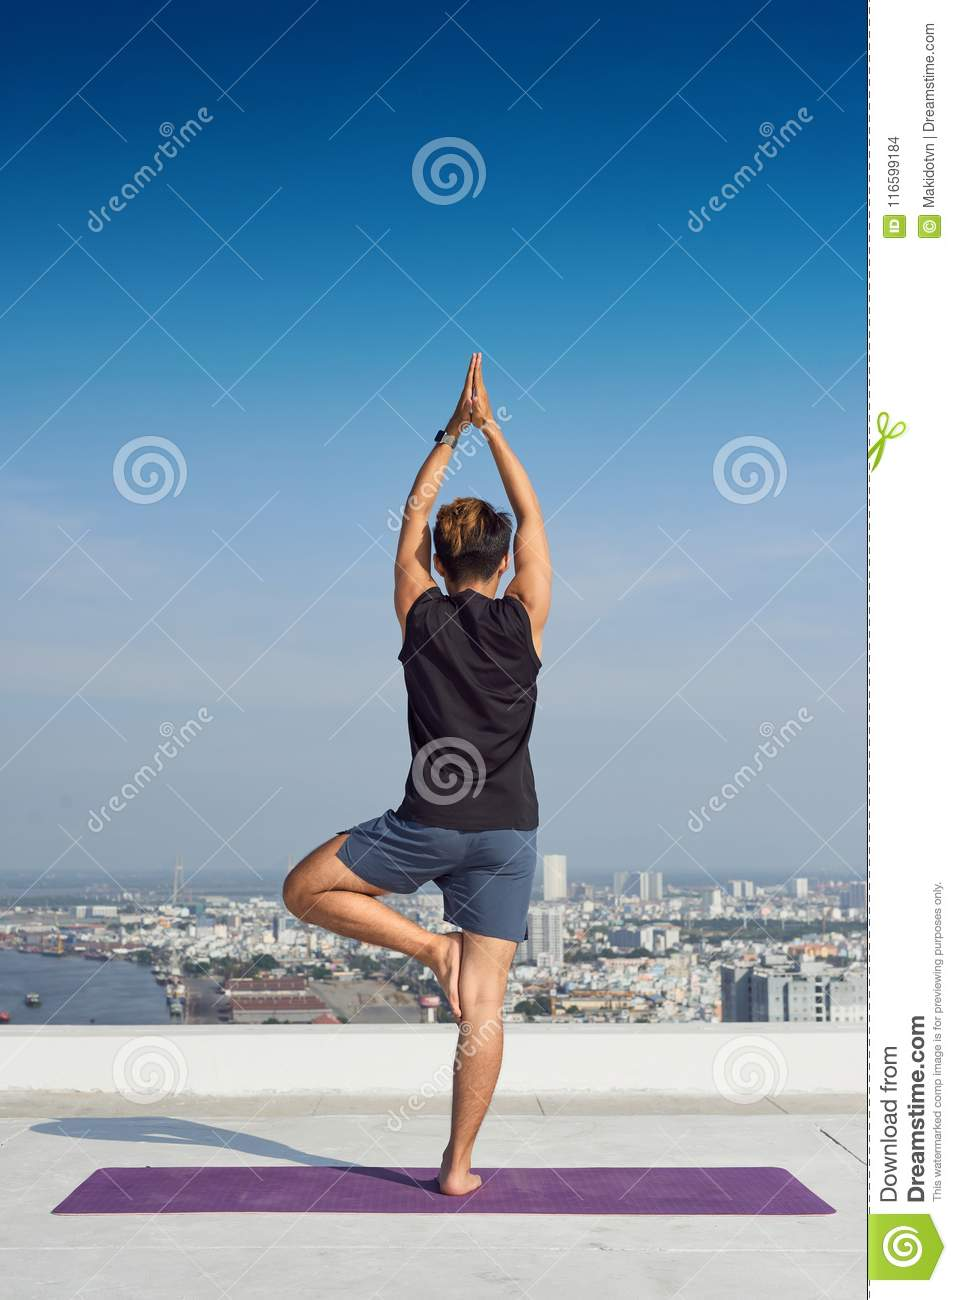 Man Practicing Advanced Yoga A Series Of Poses Lifestyle